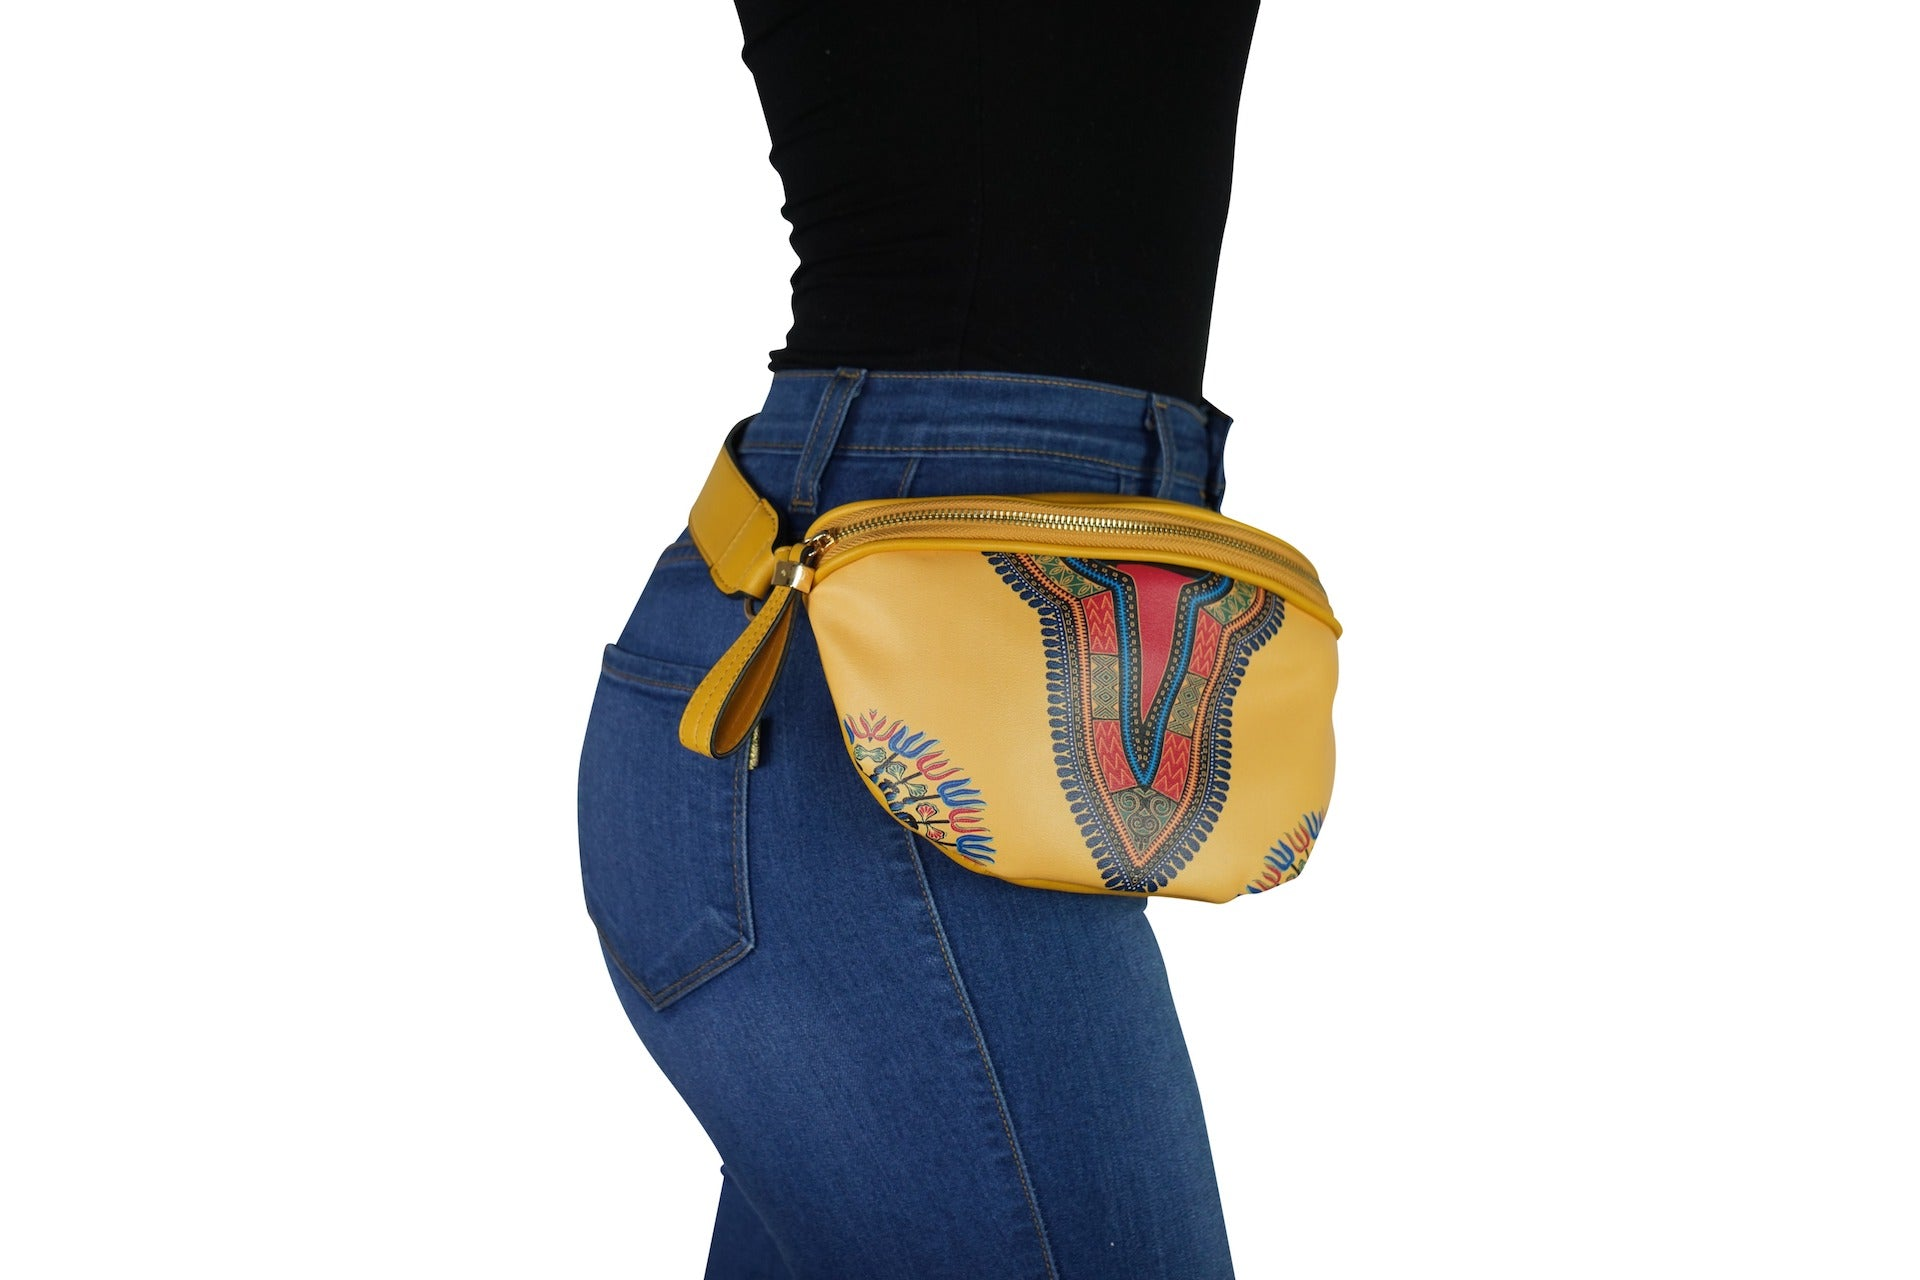 Waist Belts/Fannie Packs